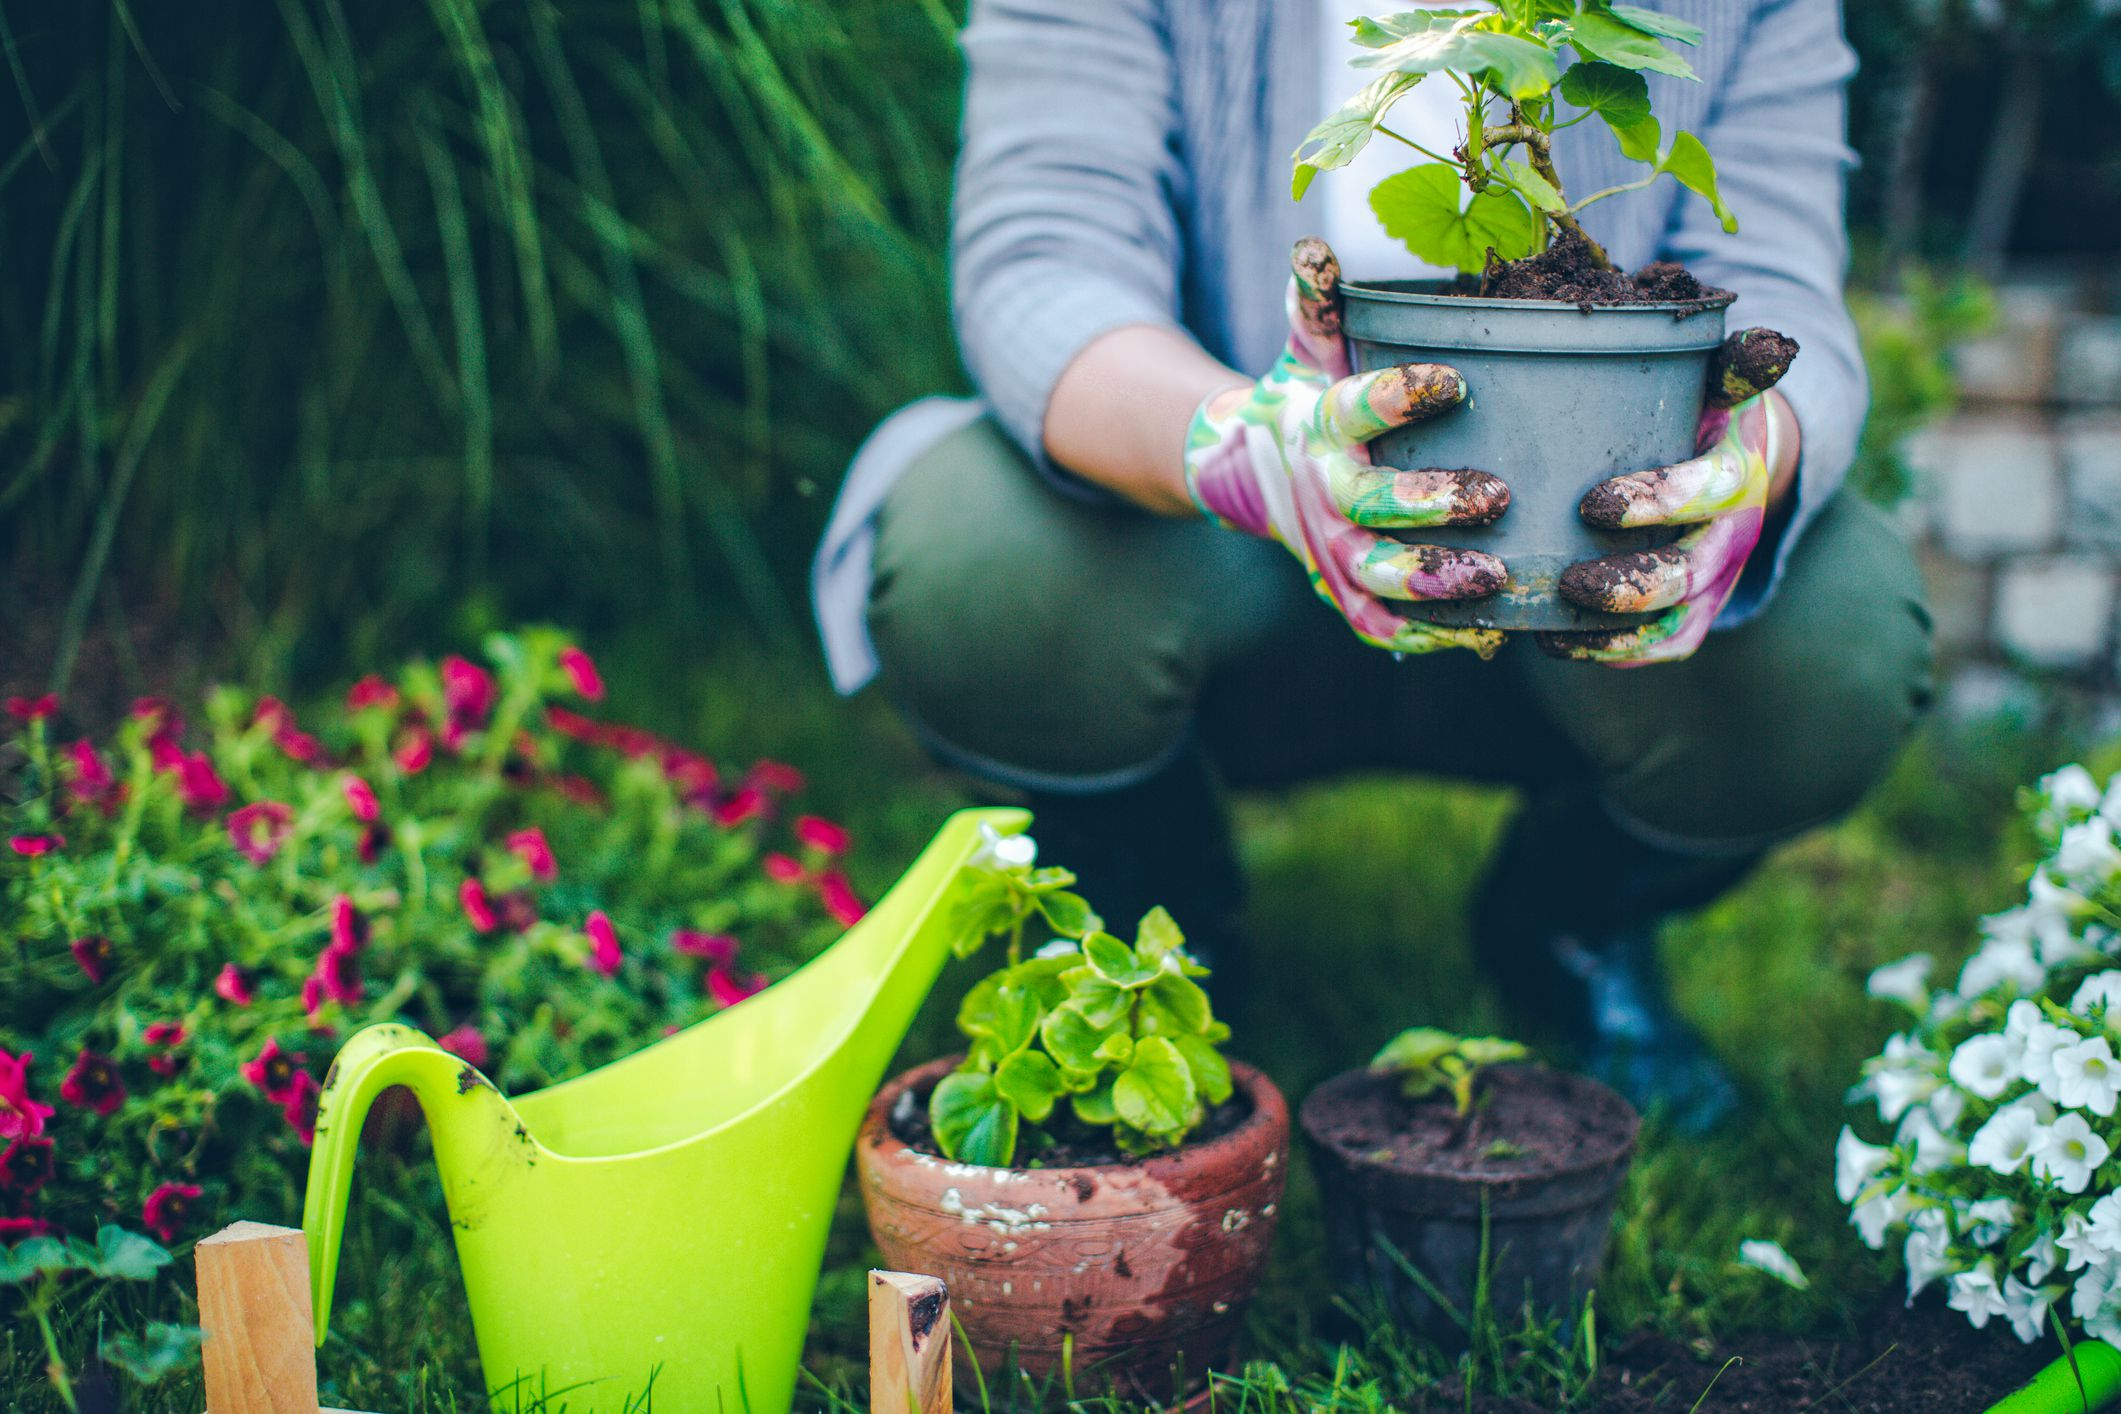 people gardening pictures - HD2121×1414